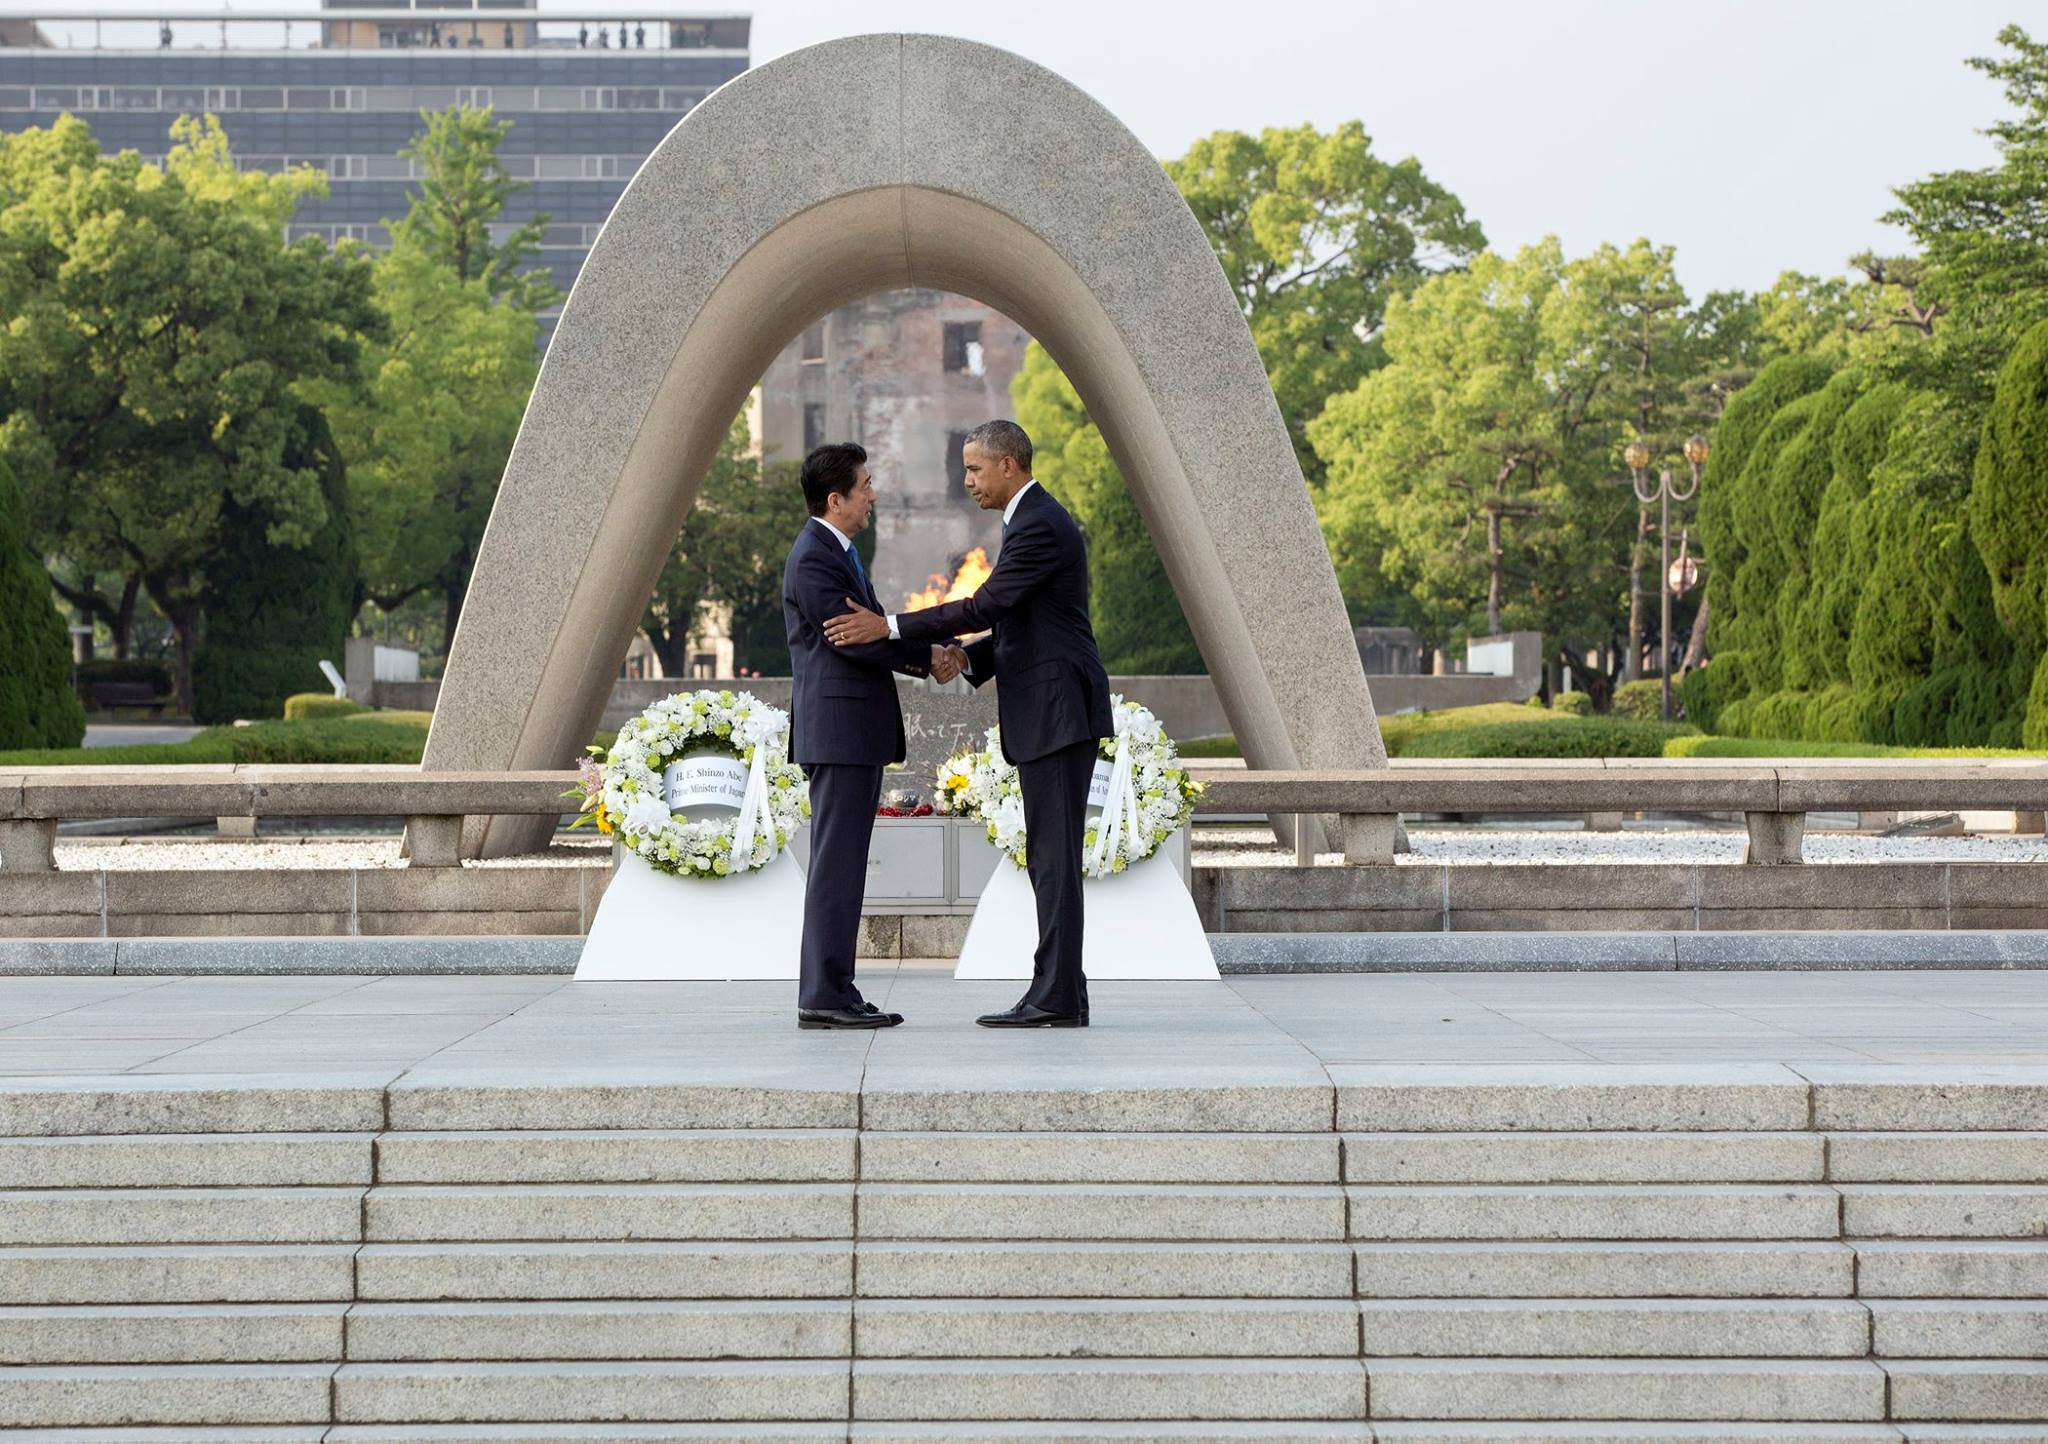 Obama-Abe-Hiroshima-The-White-House-Facebook.jpg